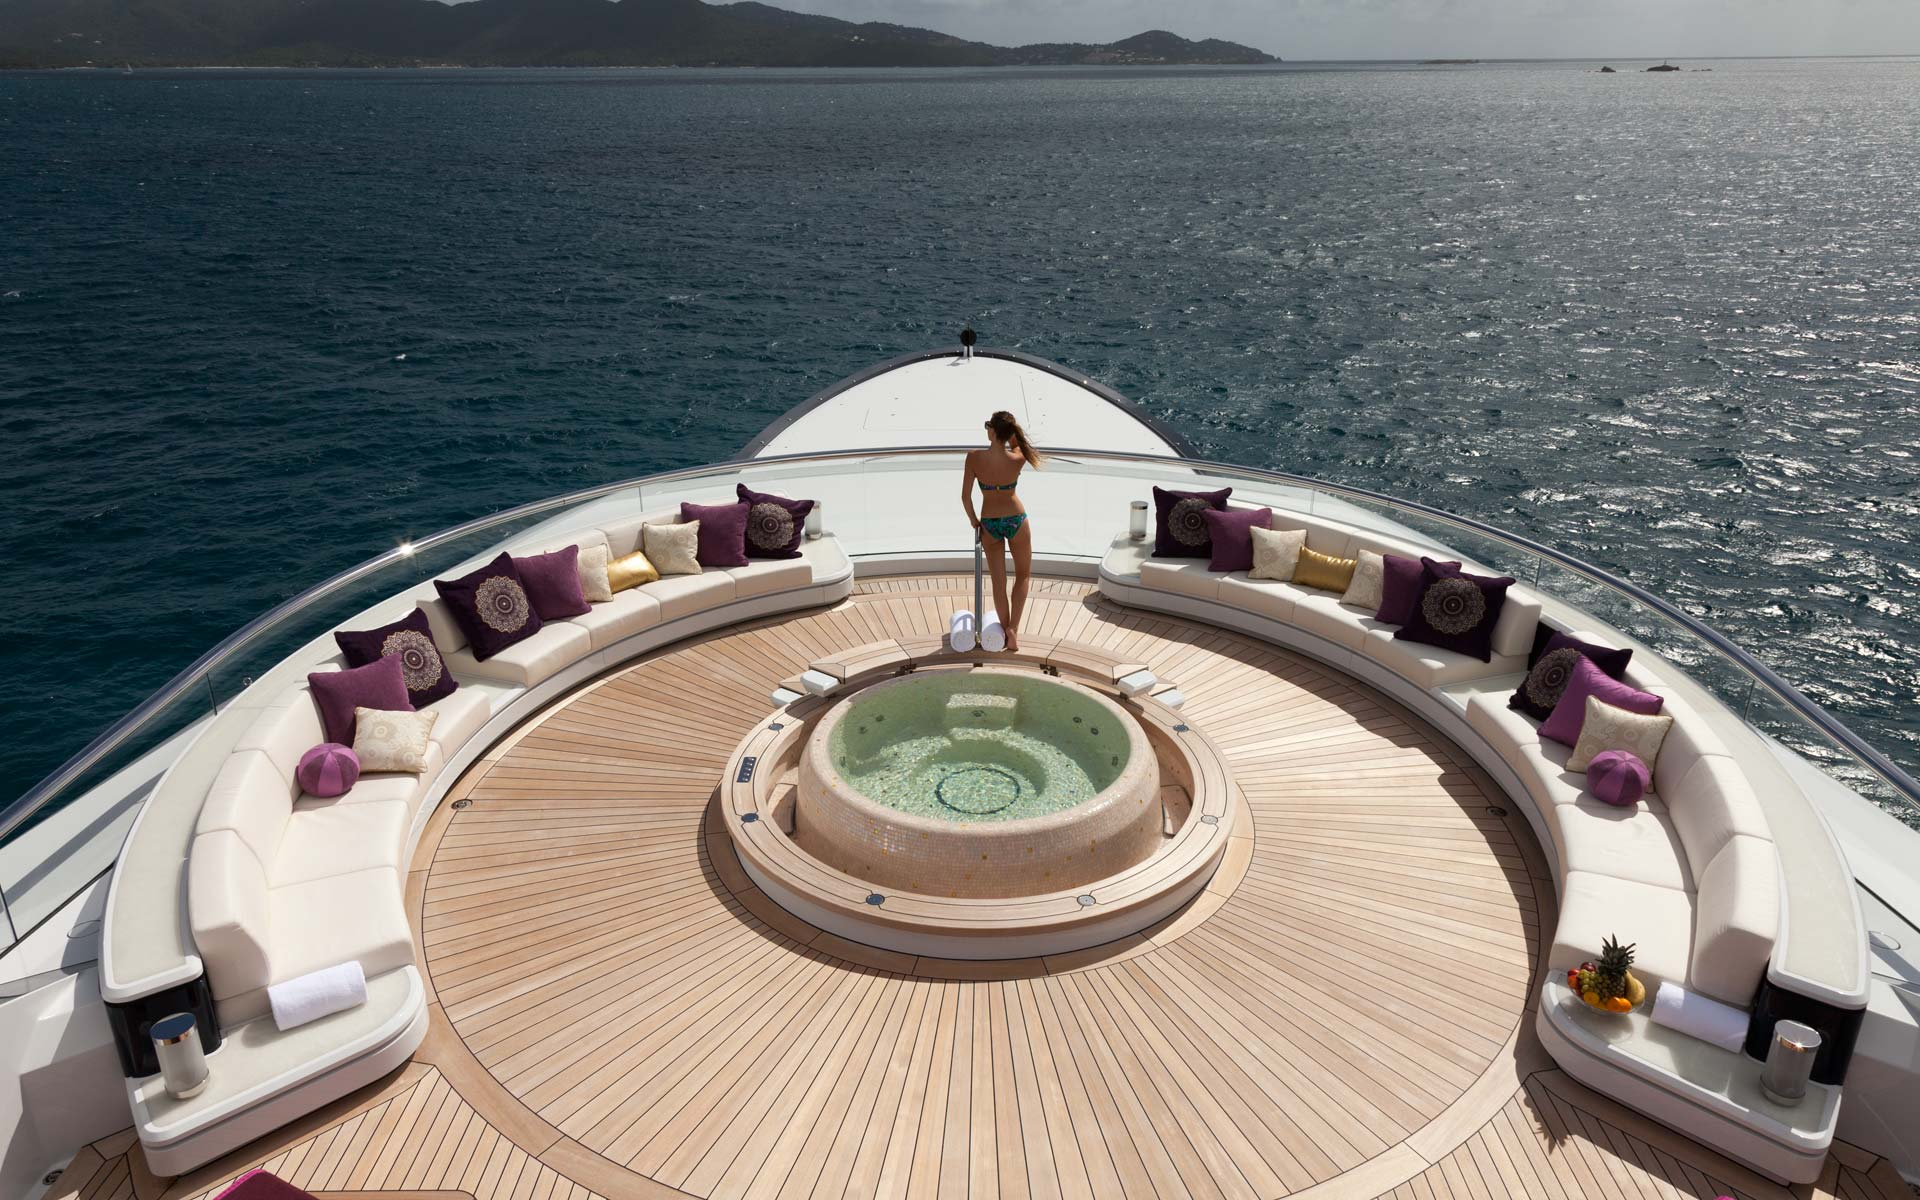 One of the best spots to enjoy the views while relaxing in the Jacuzzi